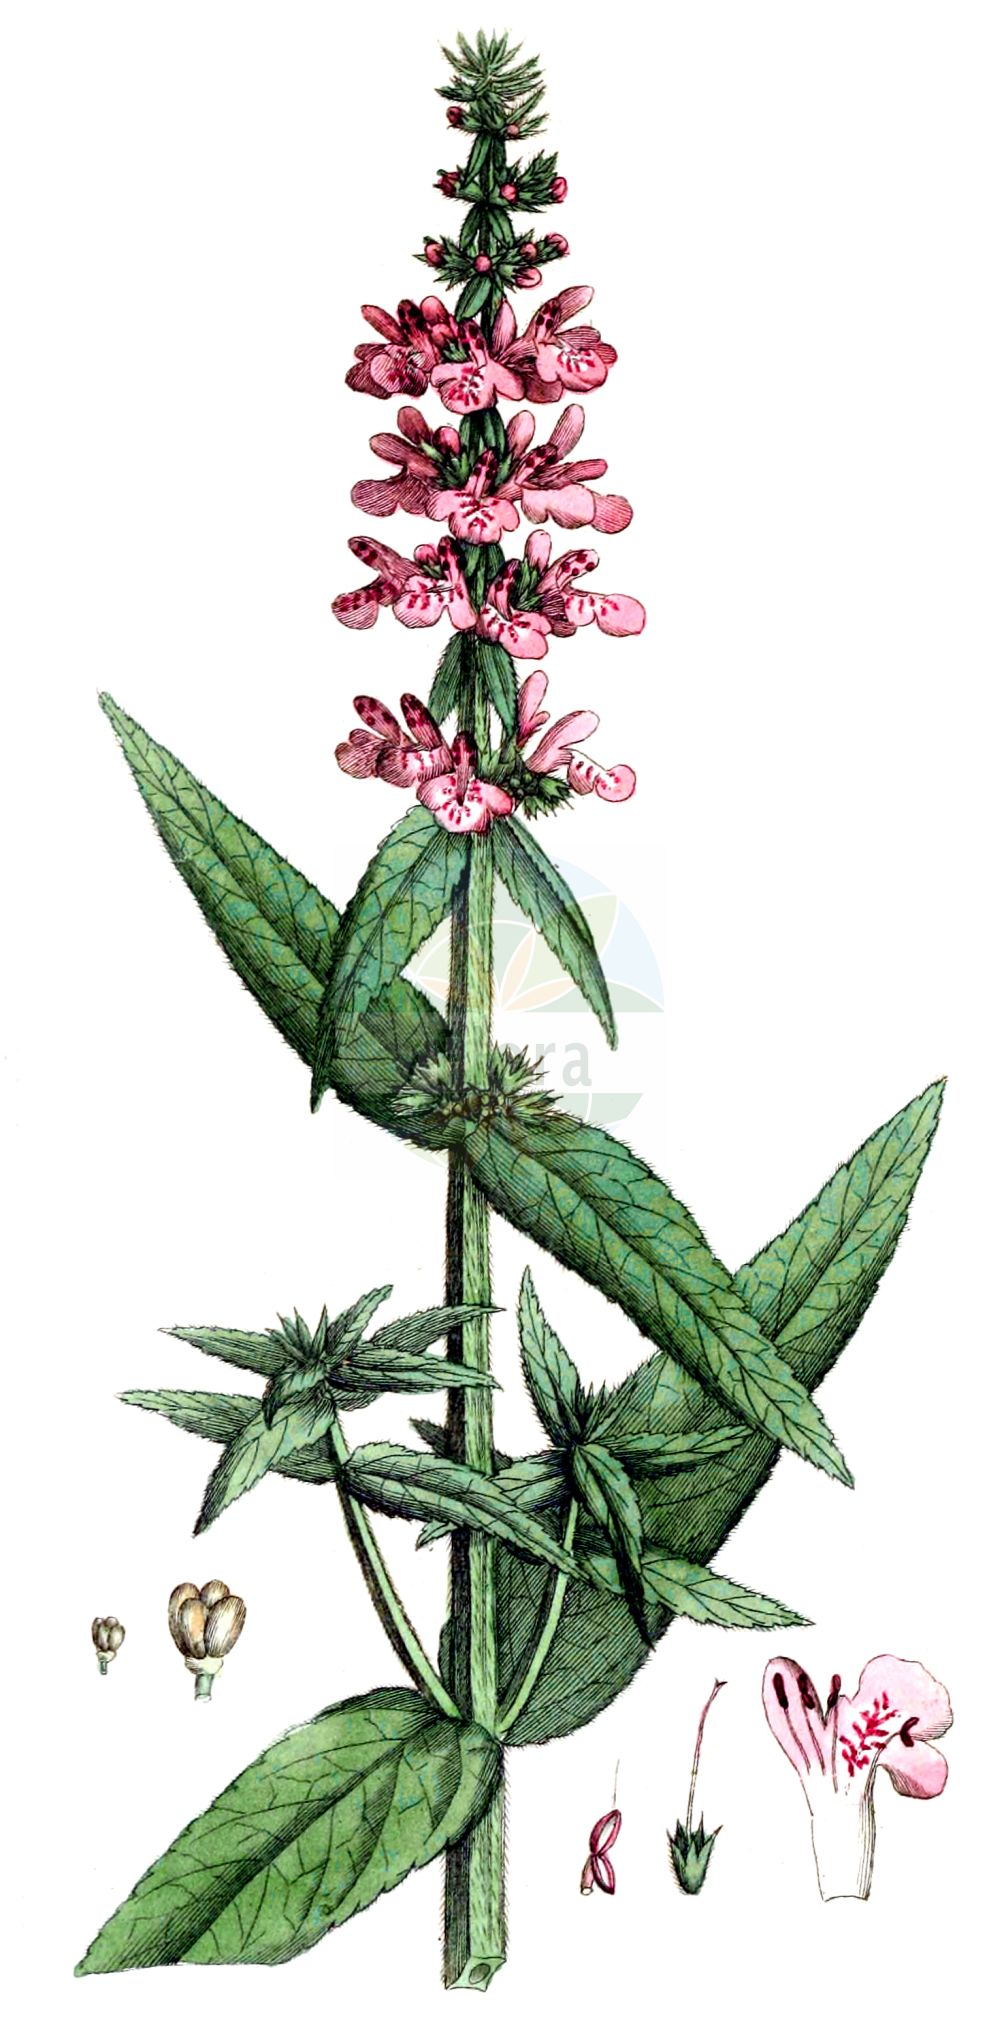 Historische Abbildung von Stachys palustris (Sumpf-Ziest - Marsh Woundwort). Das Bild zeigt Blatt, Bluete, Frucht und Same. ---- Historical Drawing of Stachys palustris (Sumpf-Ziest - Marsh Woundwort).The image is showing leaf, flower, fruit and seed.(Stachys palustris,Sumpf-Ziest,Marsh Woundwort,Stachys aquatica,Stachys austriaca,Stachys maeotica,Stachys palustris,Stachys segetum,Stachys wolgensis,Sumpf-Ziest,Schweinsruebe,Marsh Woundwort,Marsh Betony,Marsh Hedgenettle,Smooth Hedgenettle,Woundwort,Stachys,Ziest,Hedgenettle,Lamiaceae,Lippenbluetengewaechse,Lippenbluetler,Nettle family,Blatt,Bluete,Frucht,Same,leaf,flower,fruit,seed,Palmstruch (1807-1843))